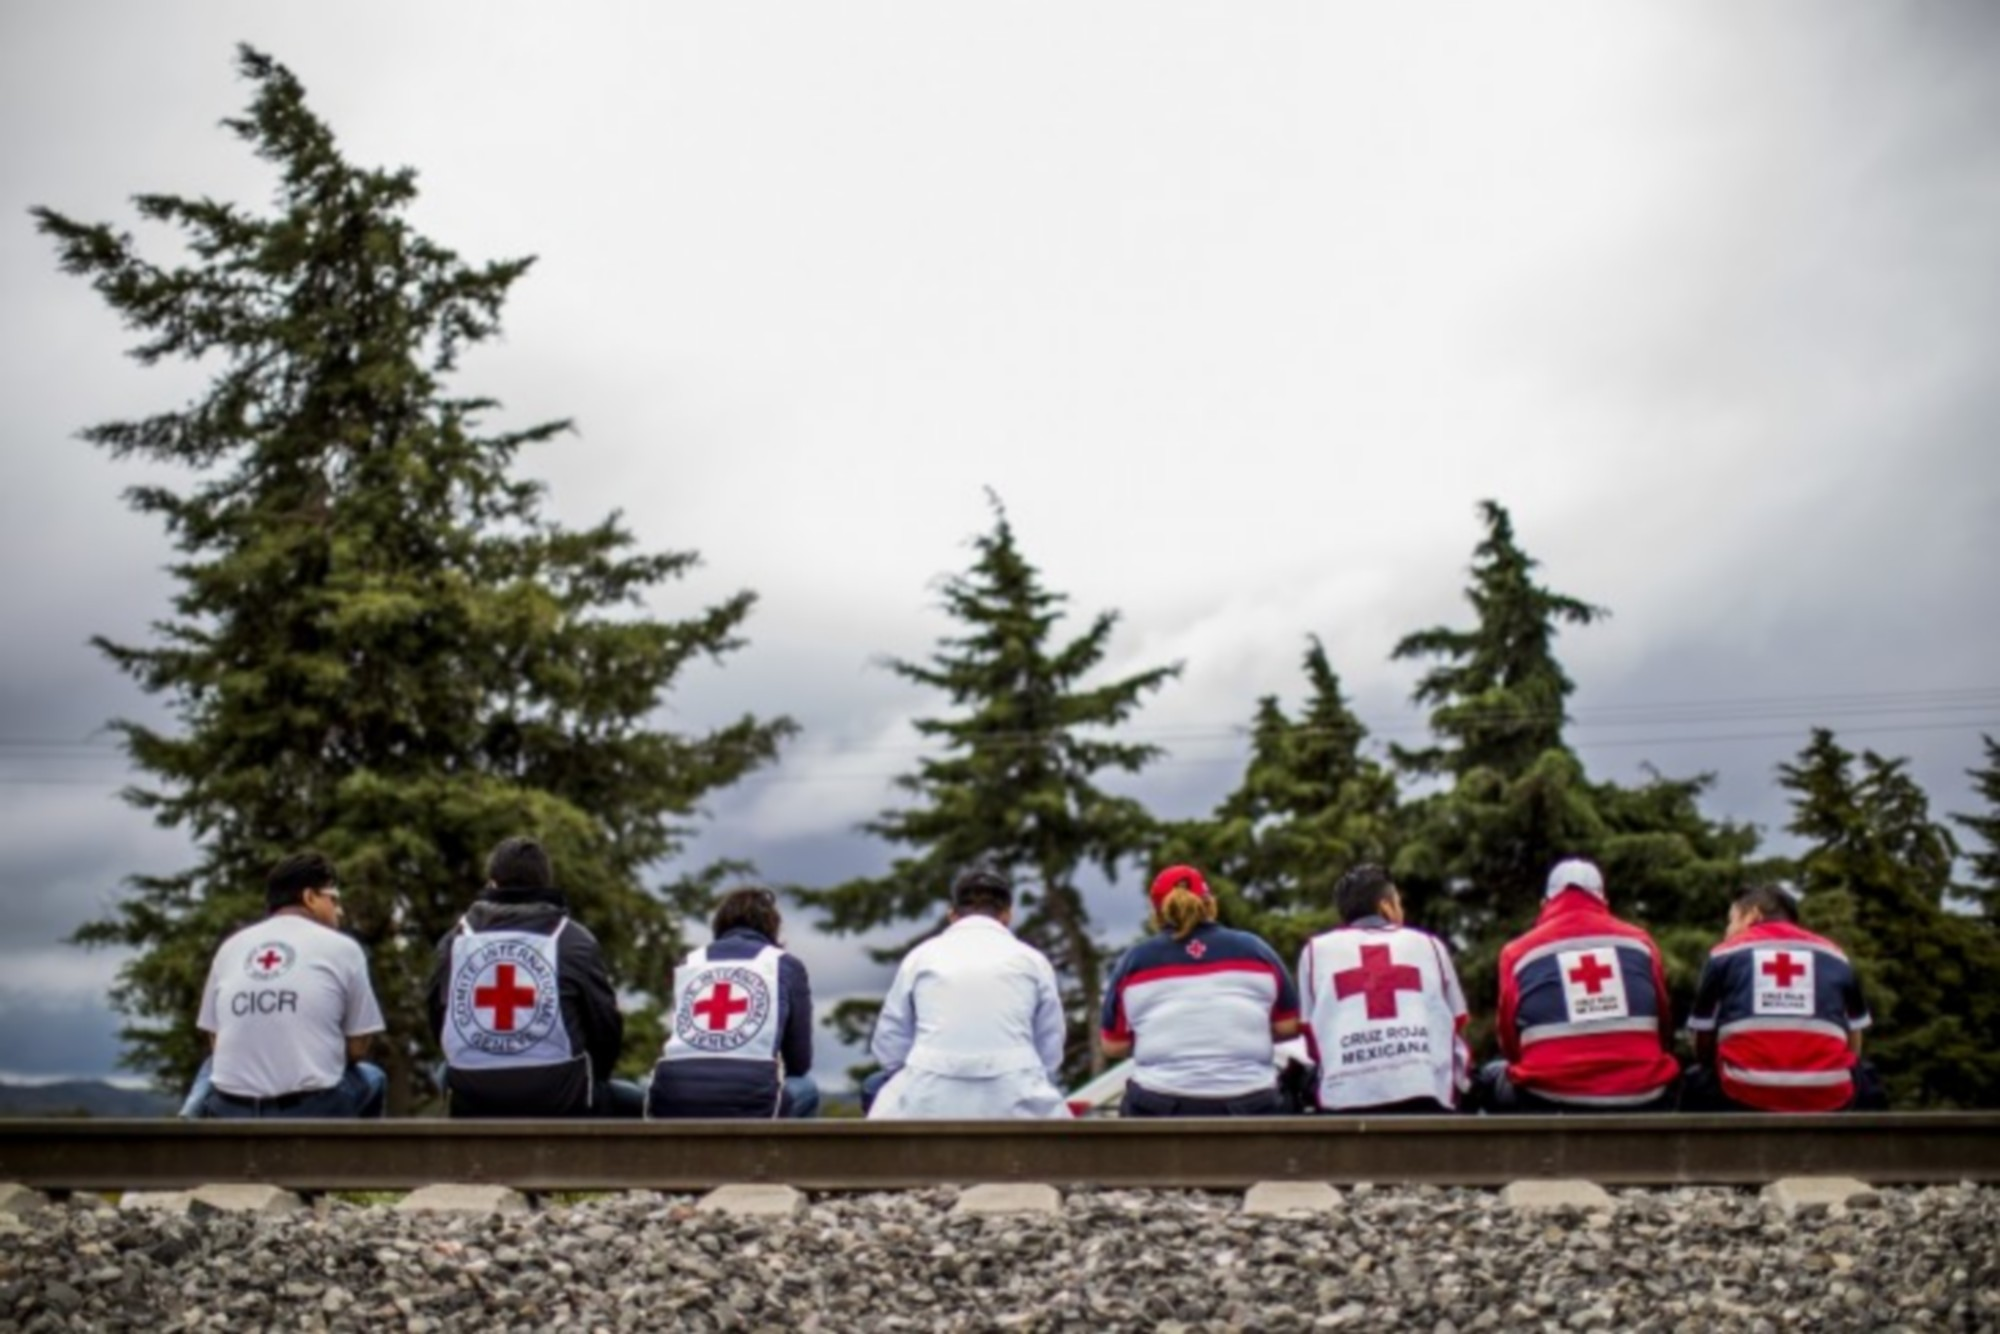 Ireland | International Committee of the Red Cross